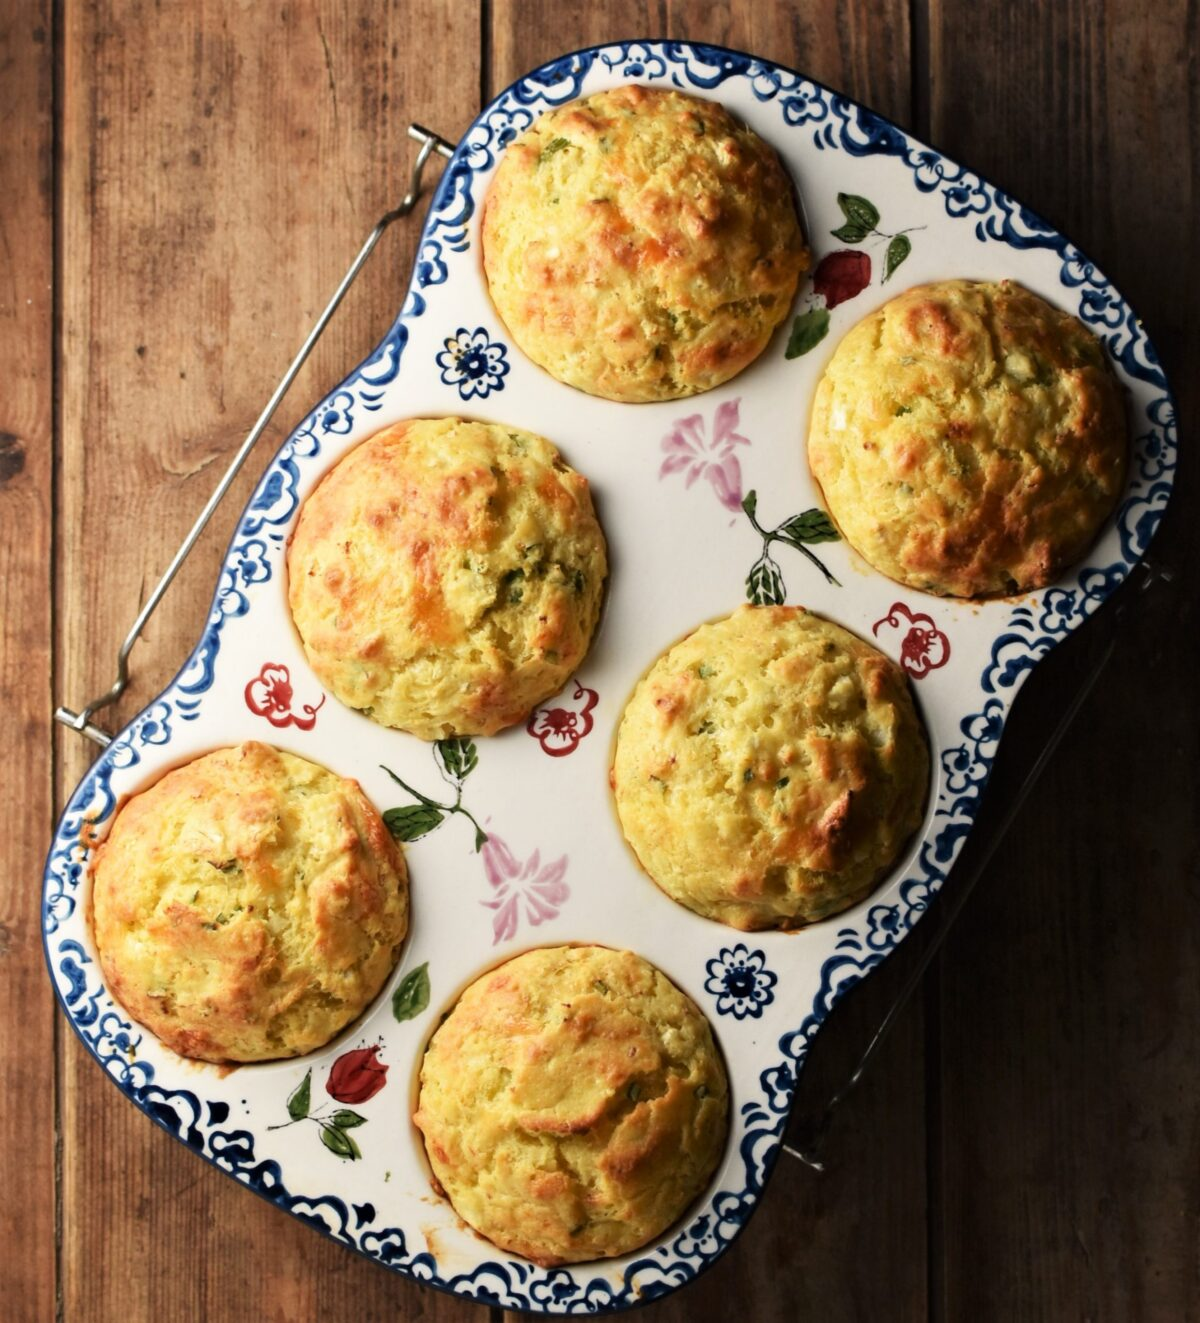 6 cauliflower muffins in ceramic white pan with blue flowery pattern.